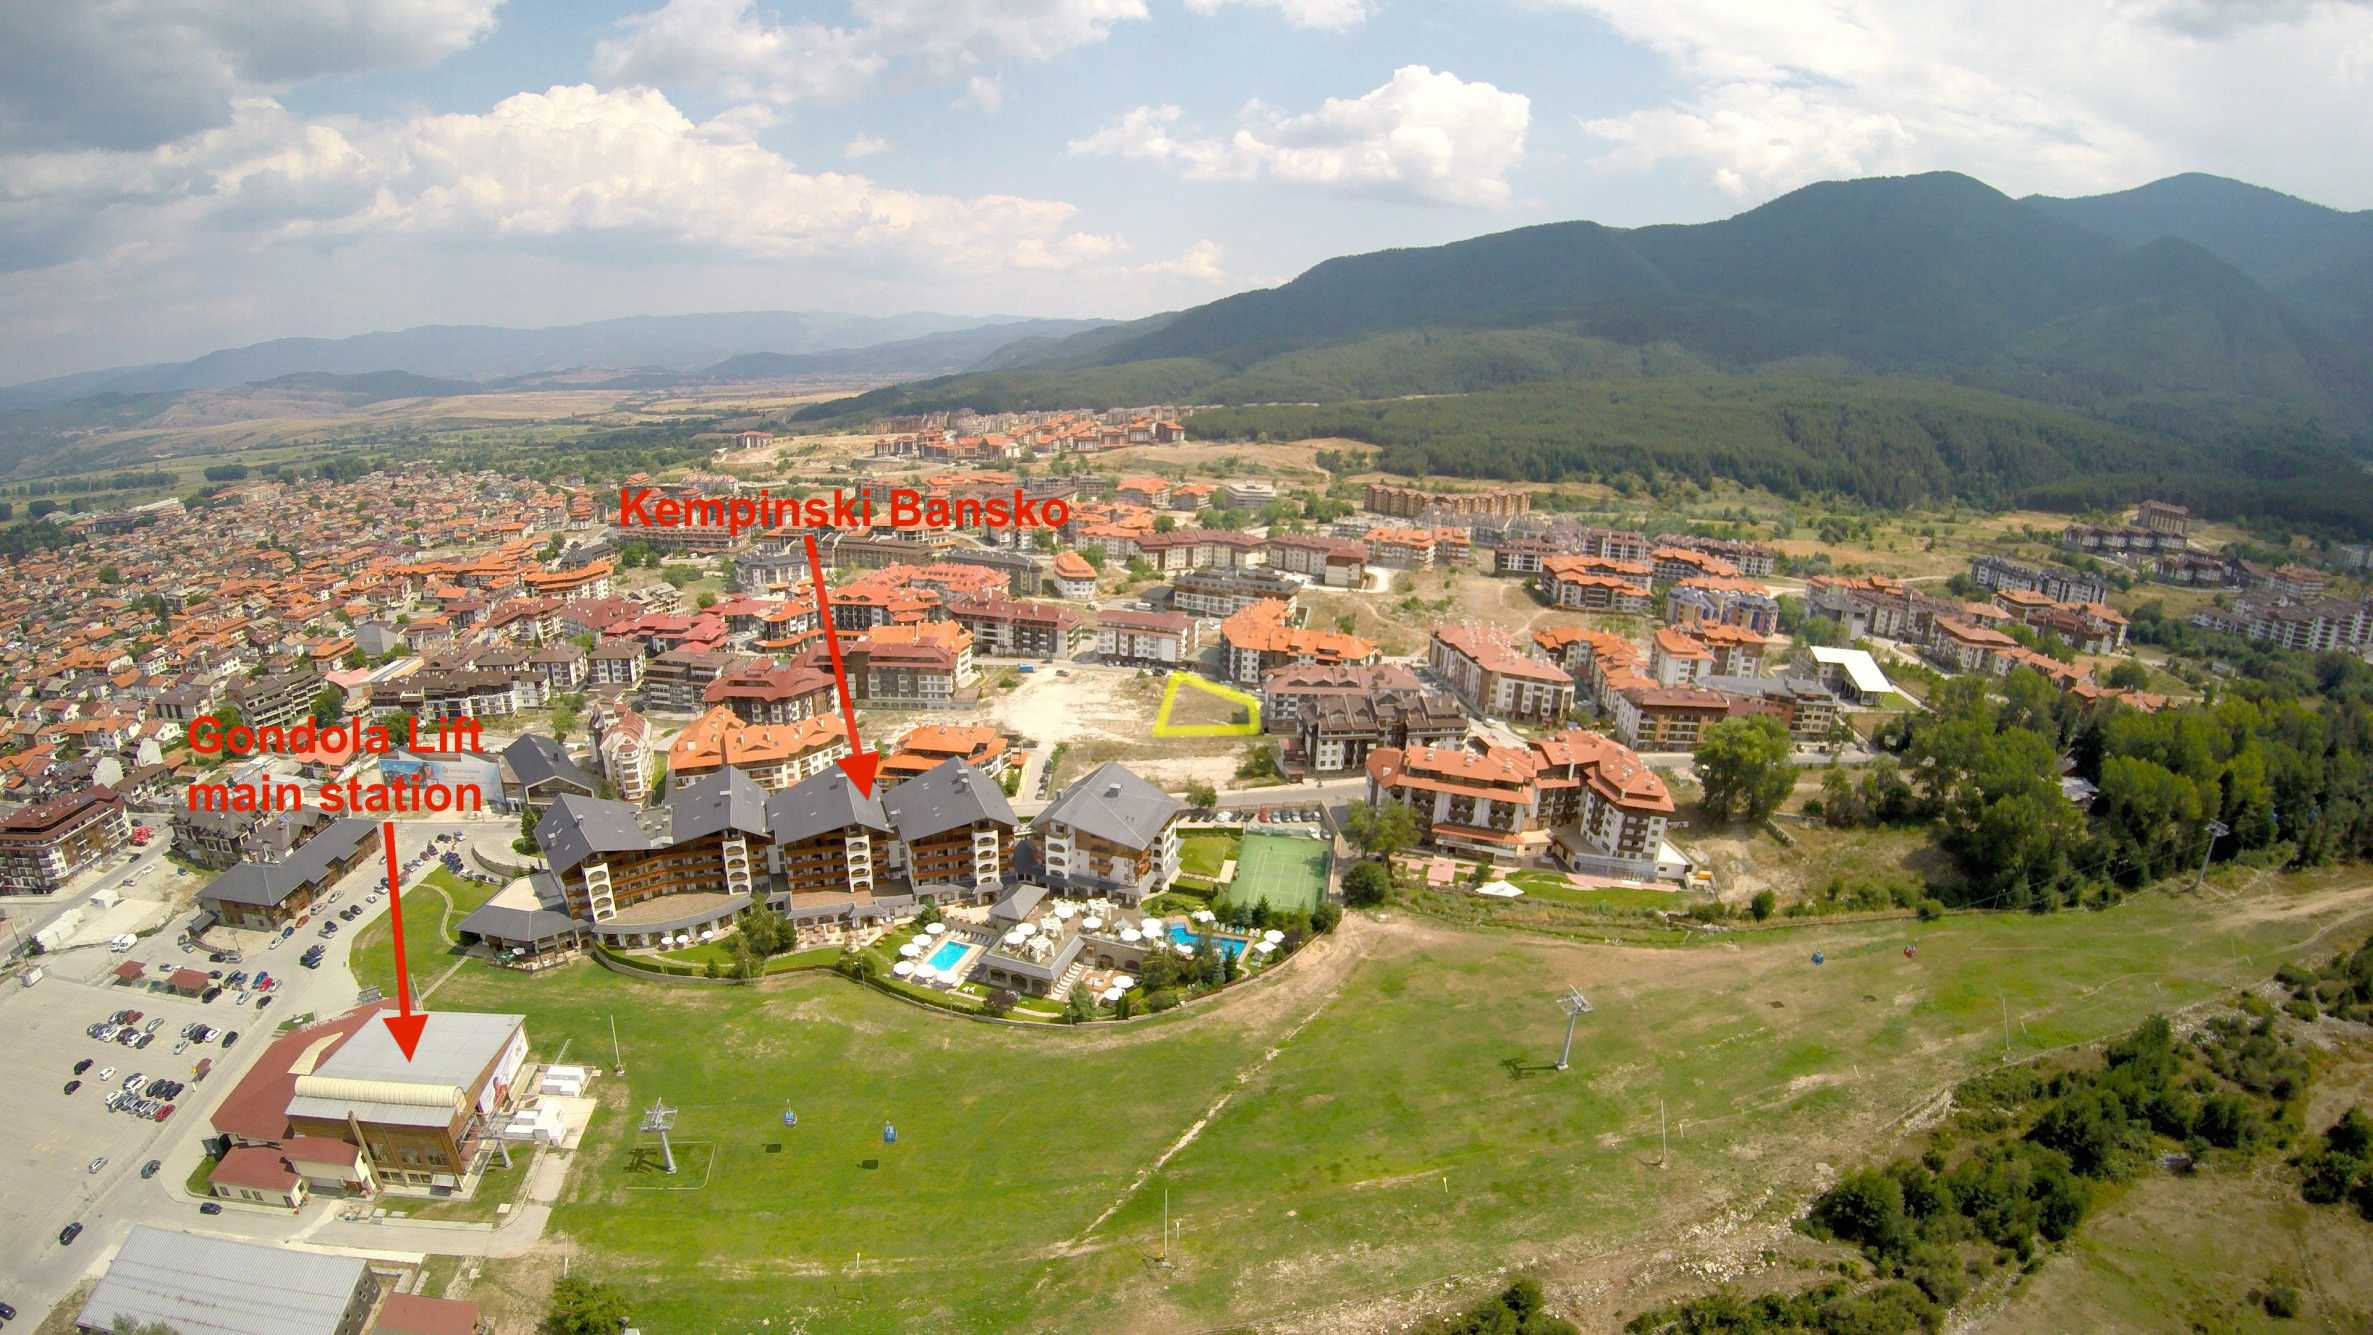 Chateau Blanc: Probably the best investment opportunity in Bansko... 30